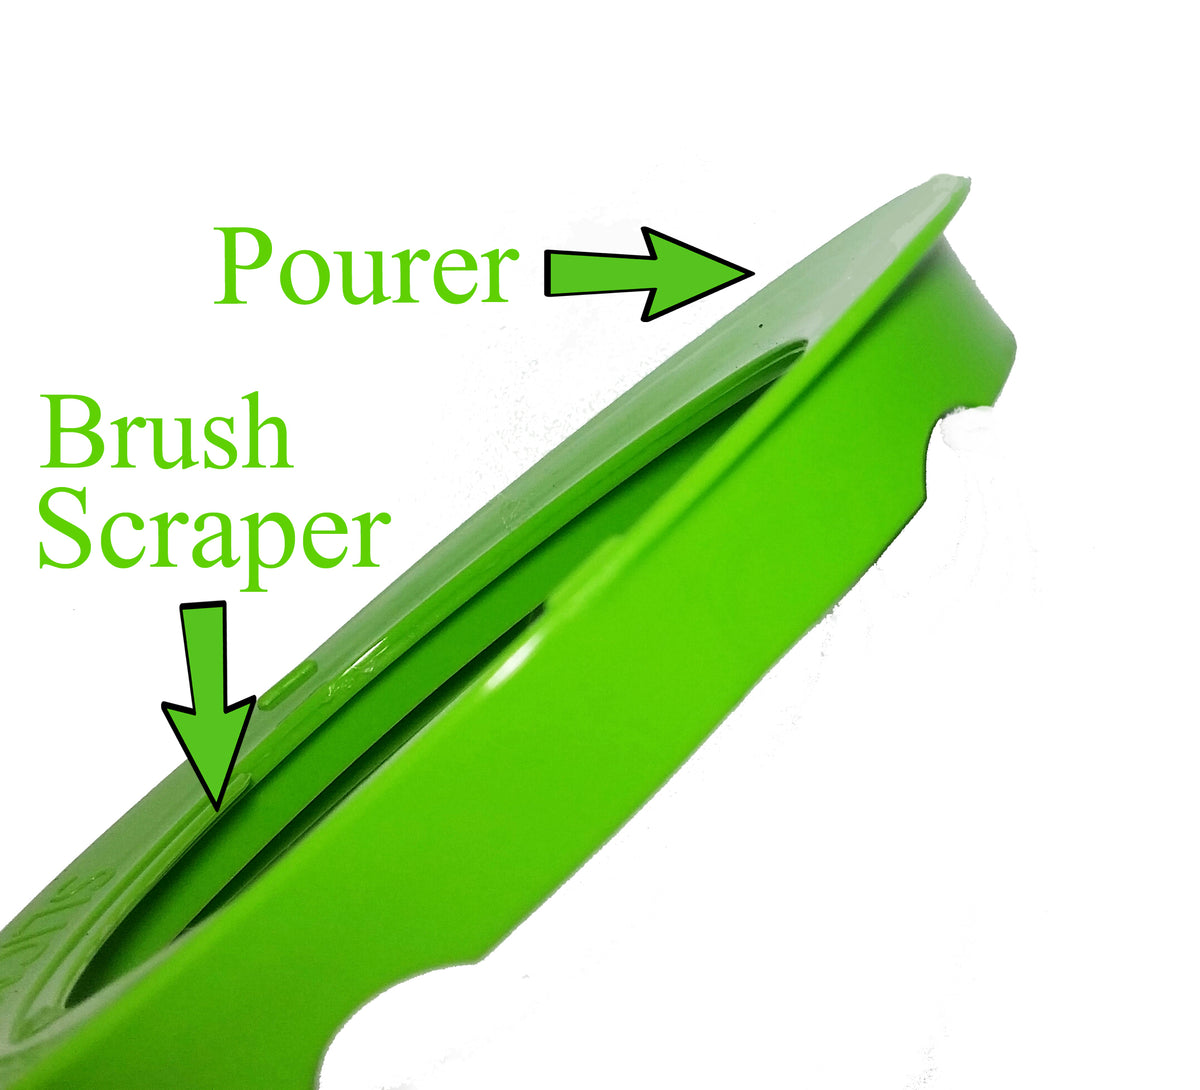 Slica - Brush Scraper and Pourer